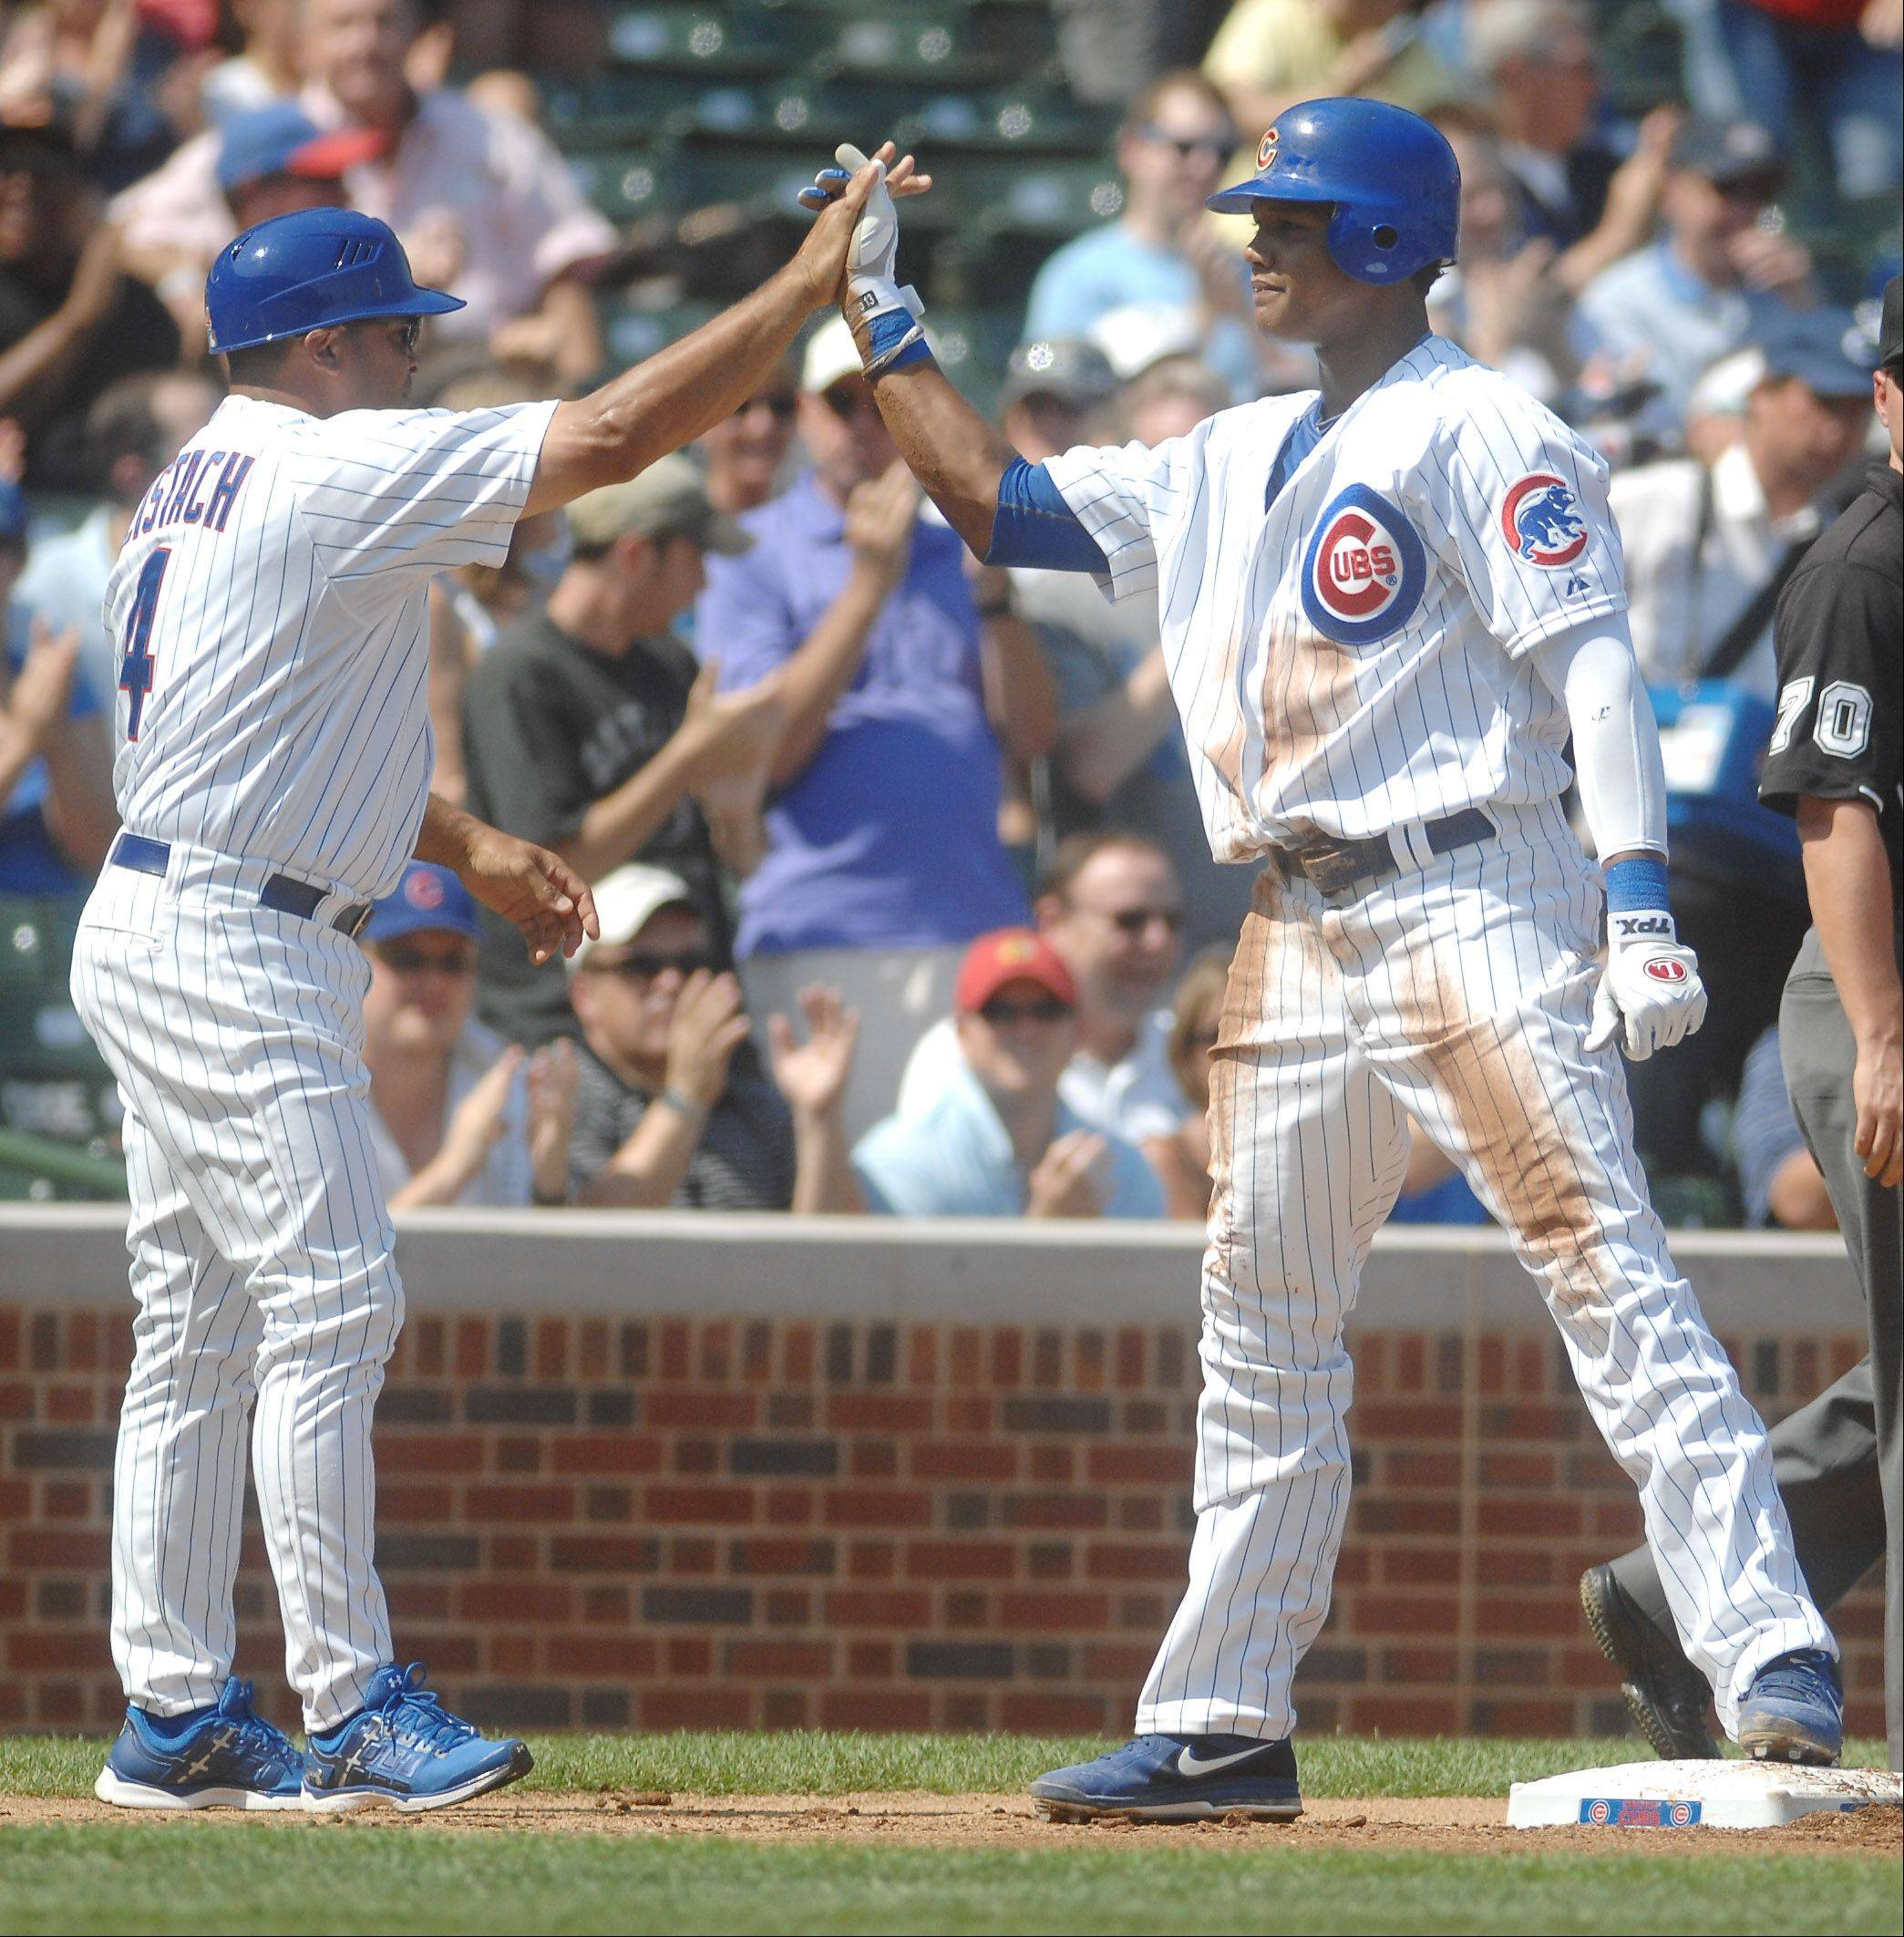 Chicago Cubs shortstop Starlin Castro is congratulated by third base coach Pat Listach after a first-inning RBI triple.